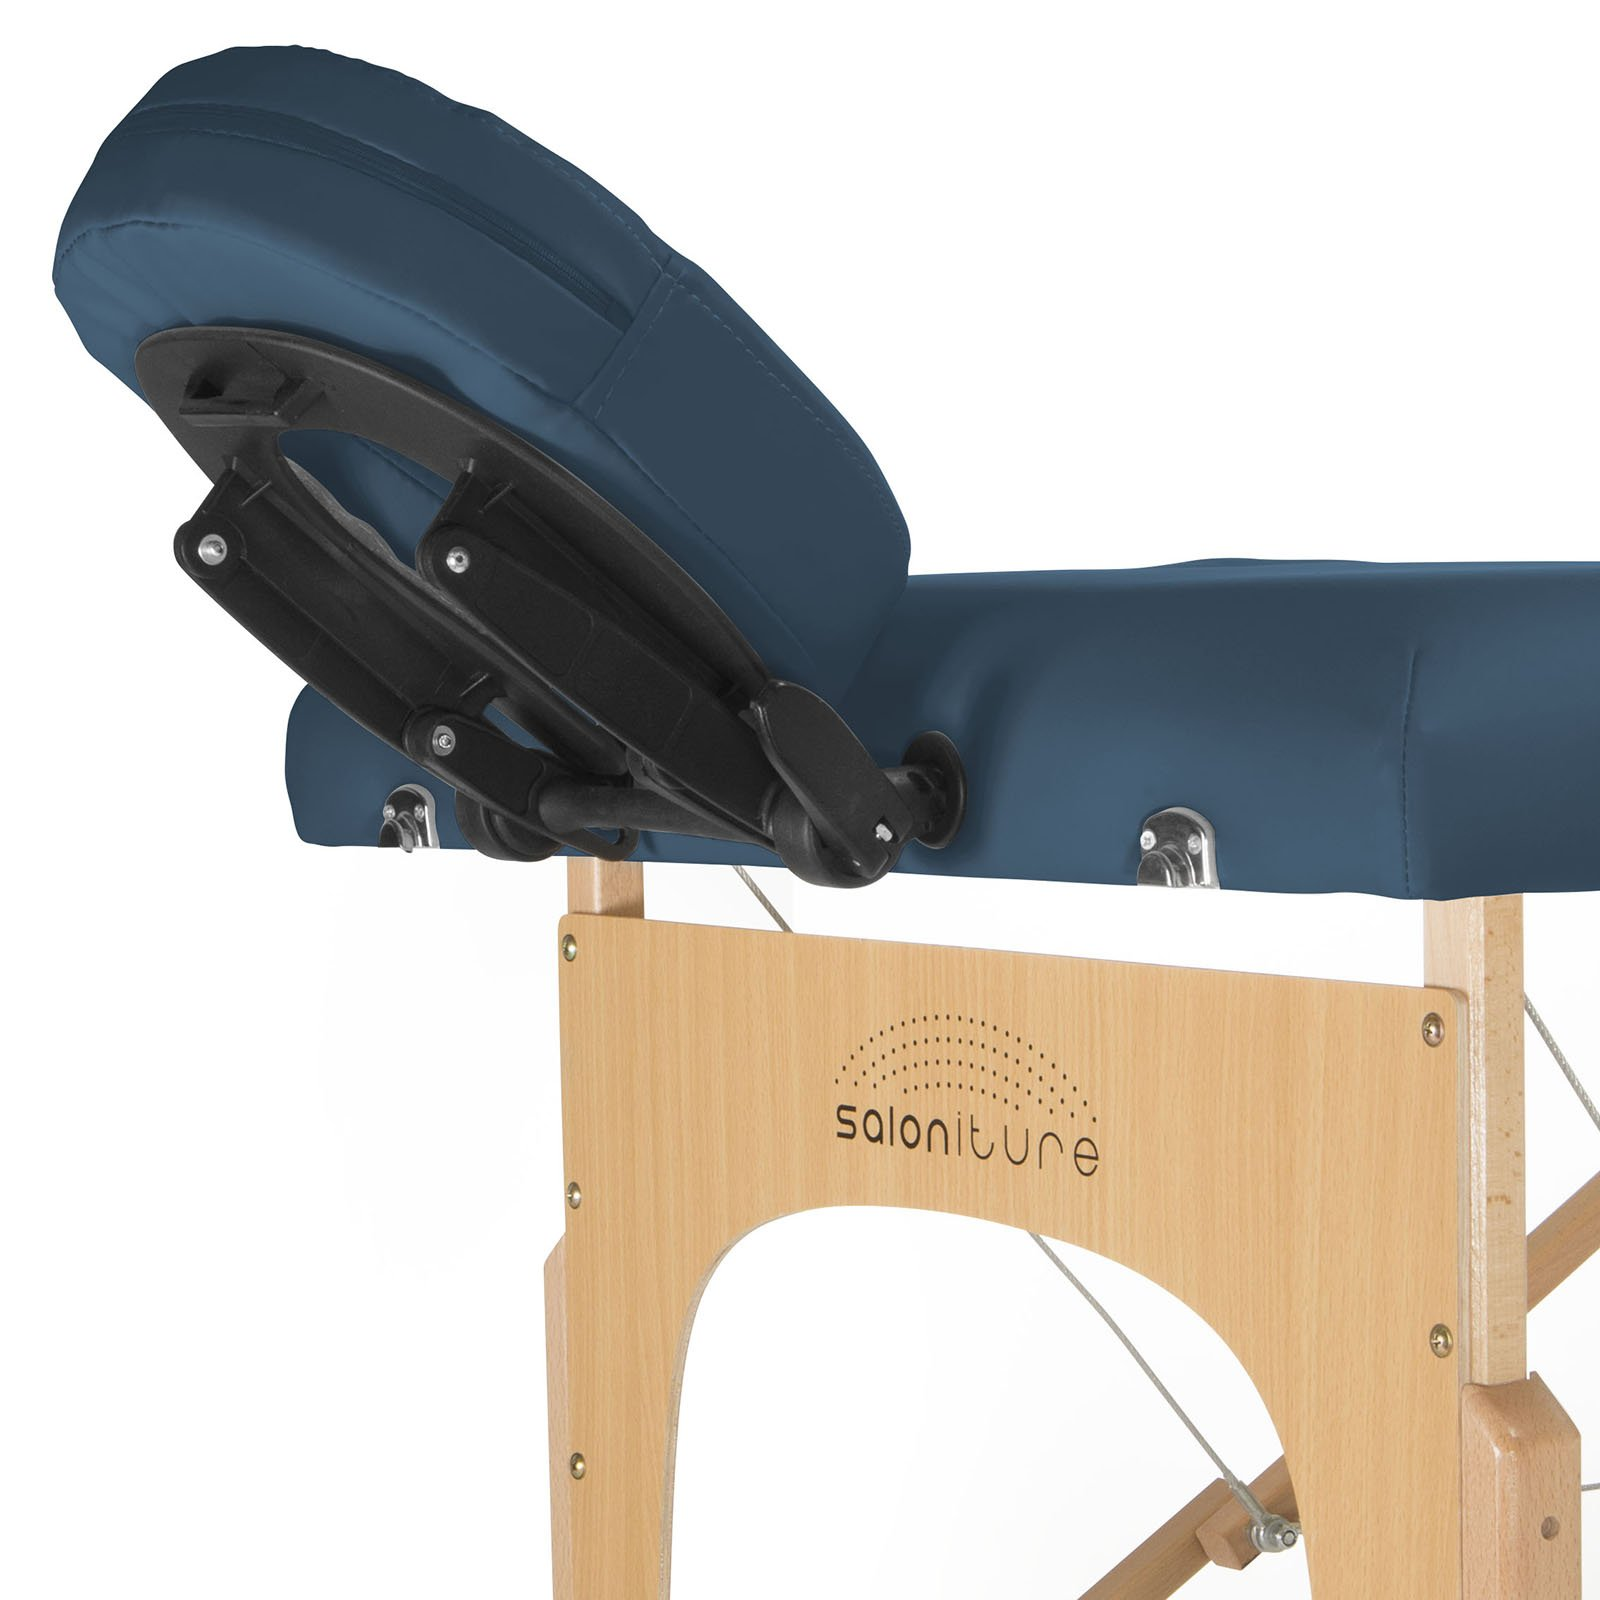 Saloniture Professional Portable Massage Table with Backrest - Blue by Saloniture (Image #3)